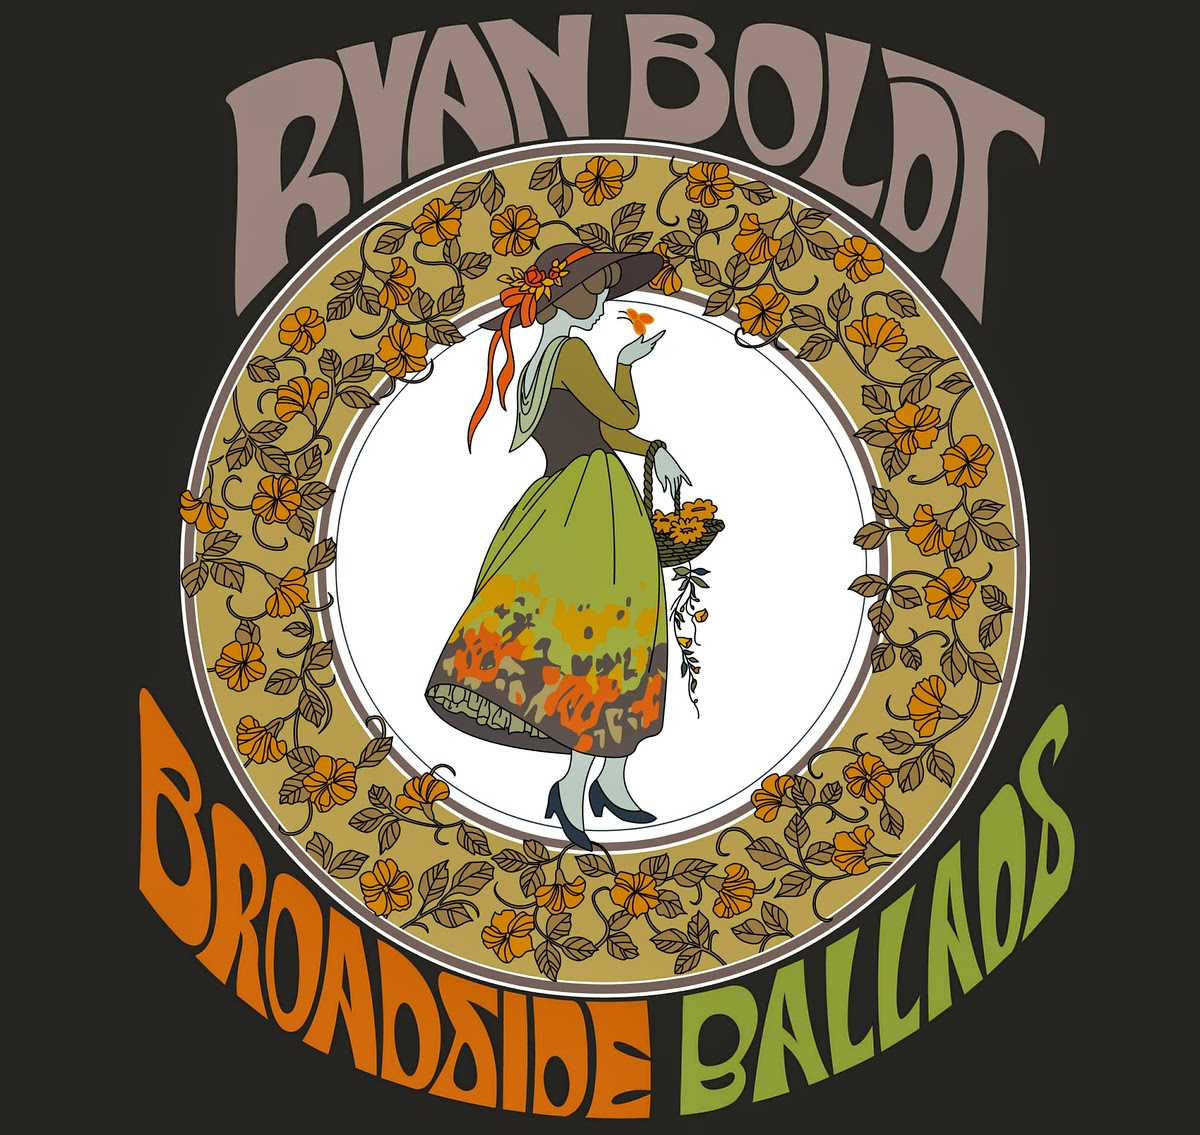 Ryan Boldt - Broadside Ballads